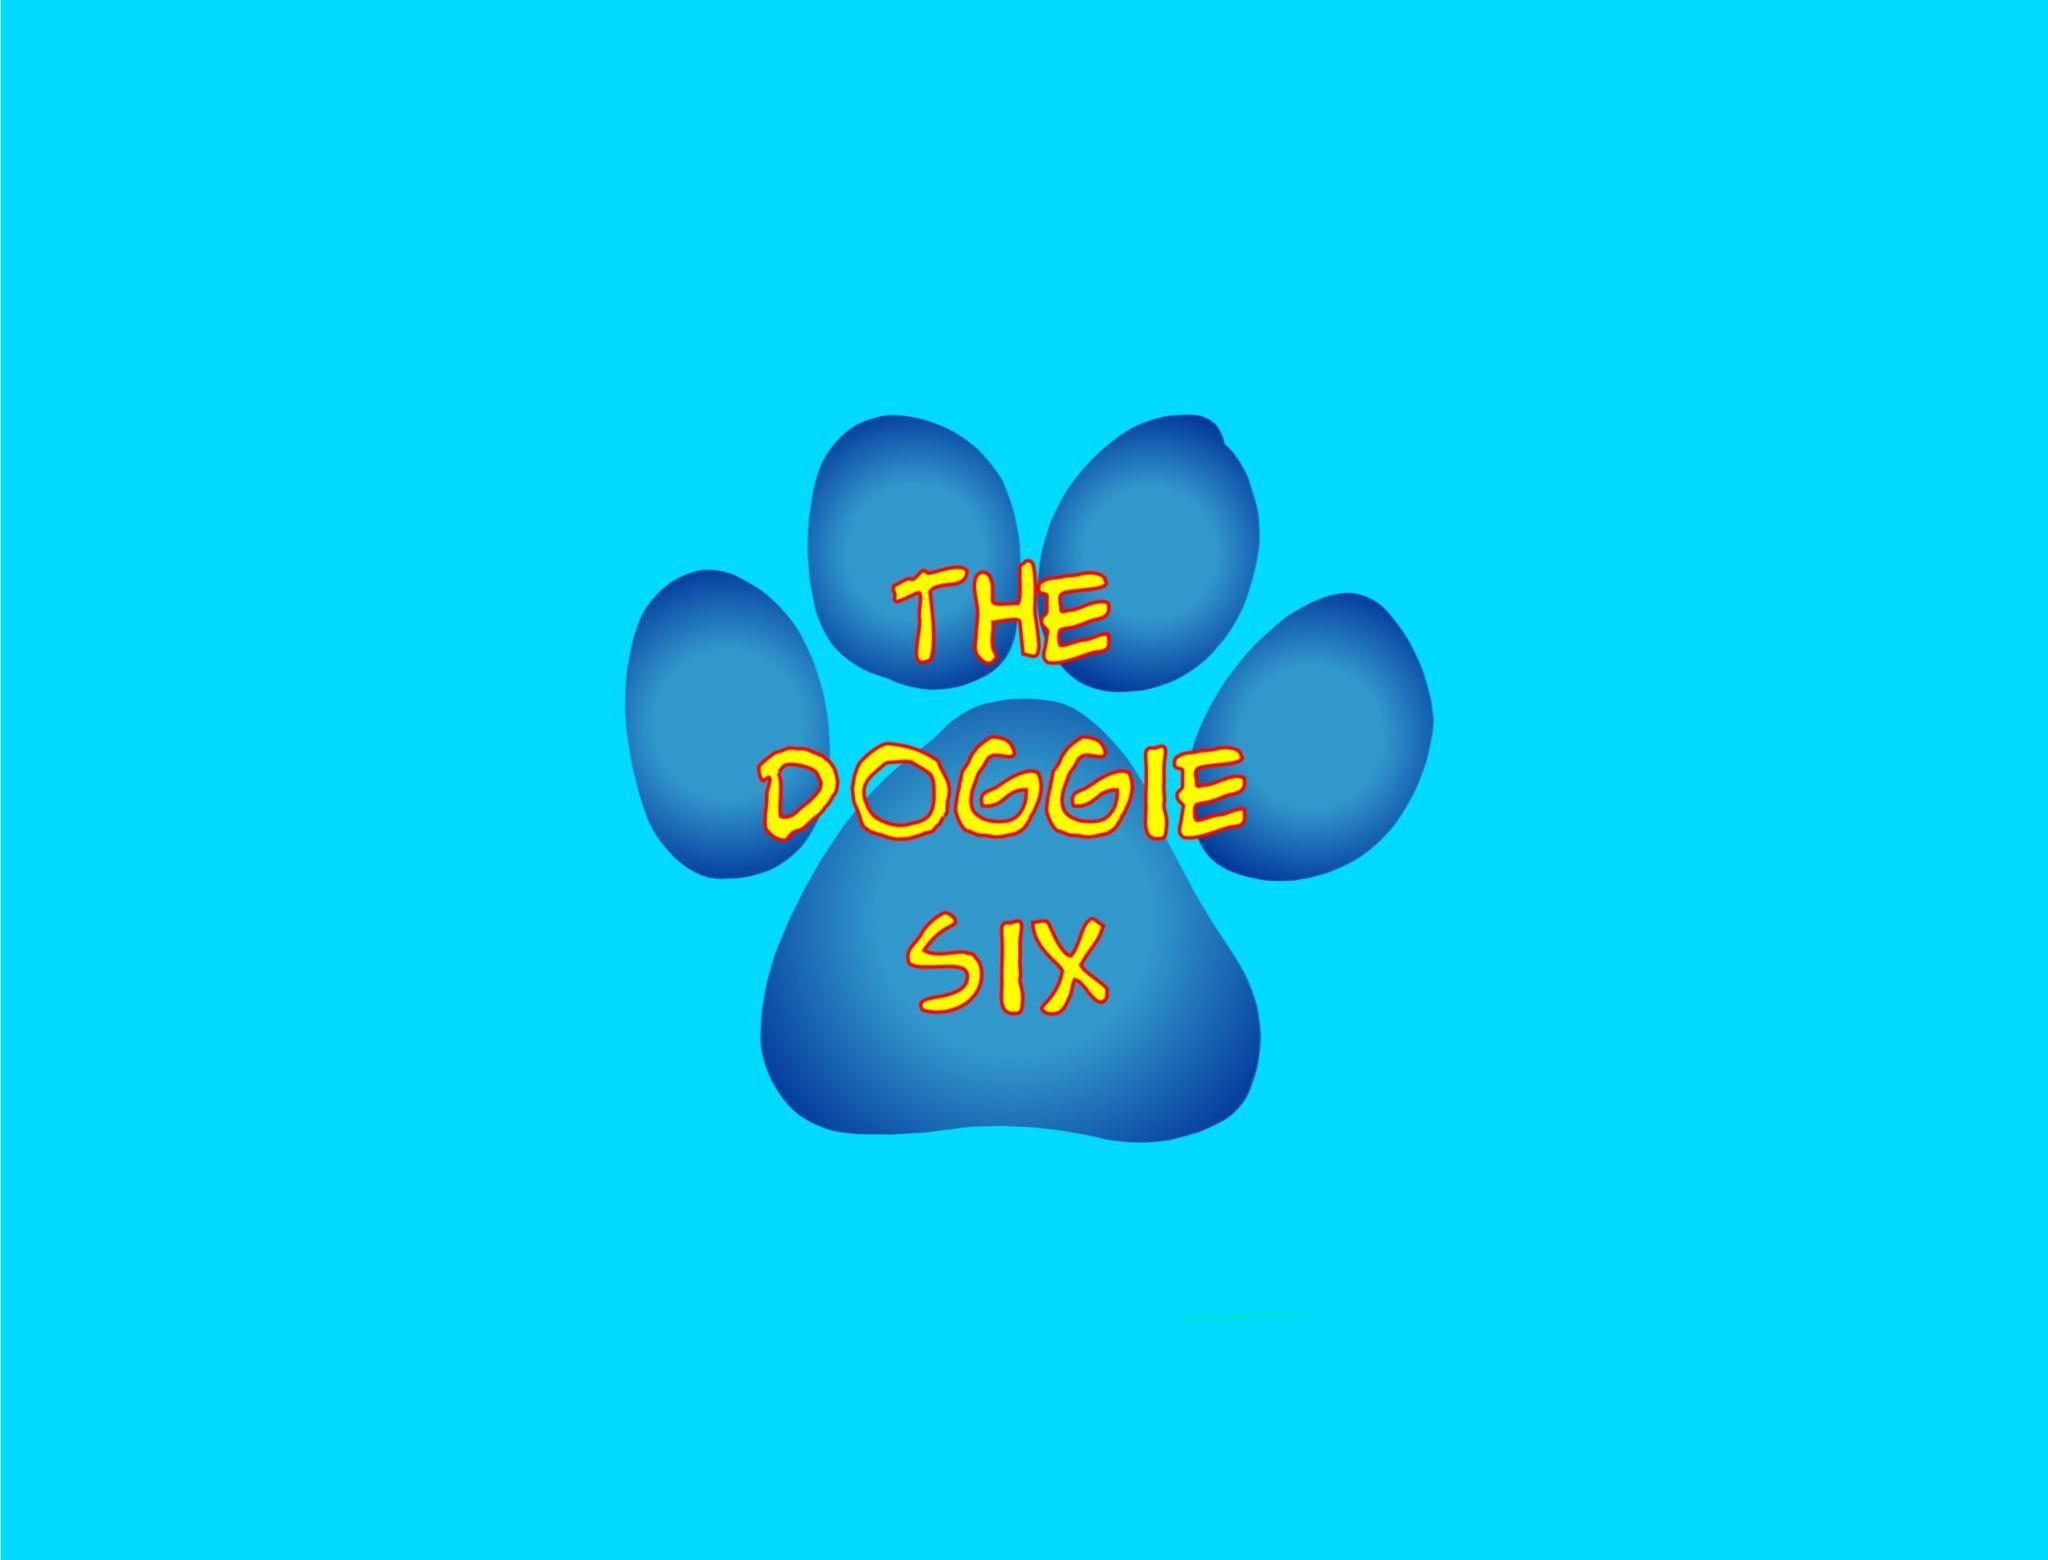 Do you watch The Doggie Six?